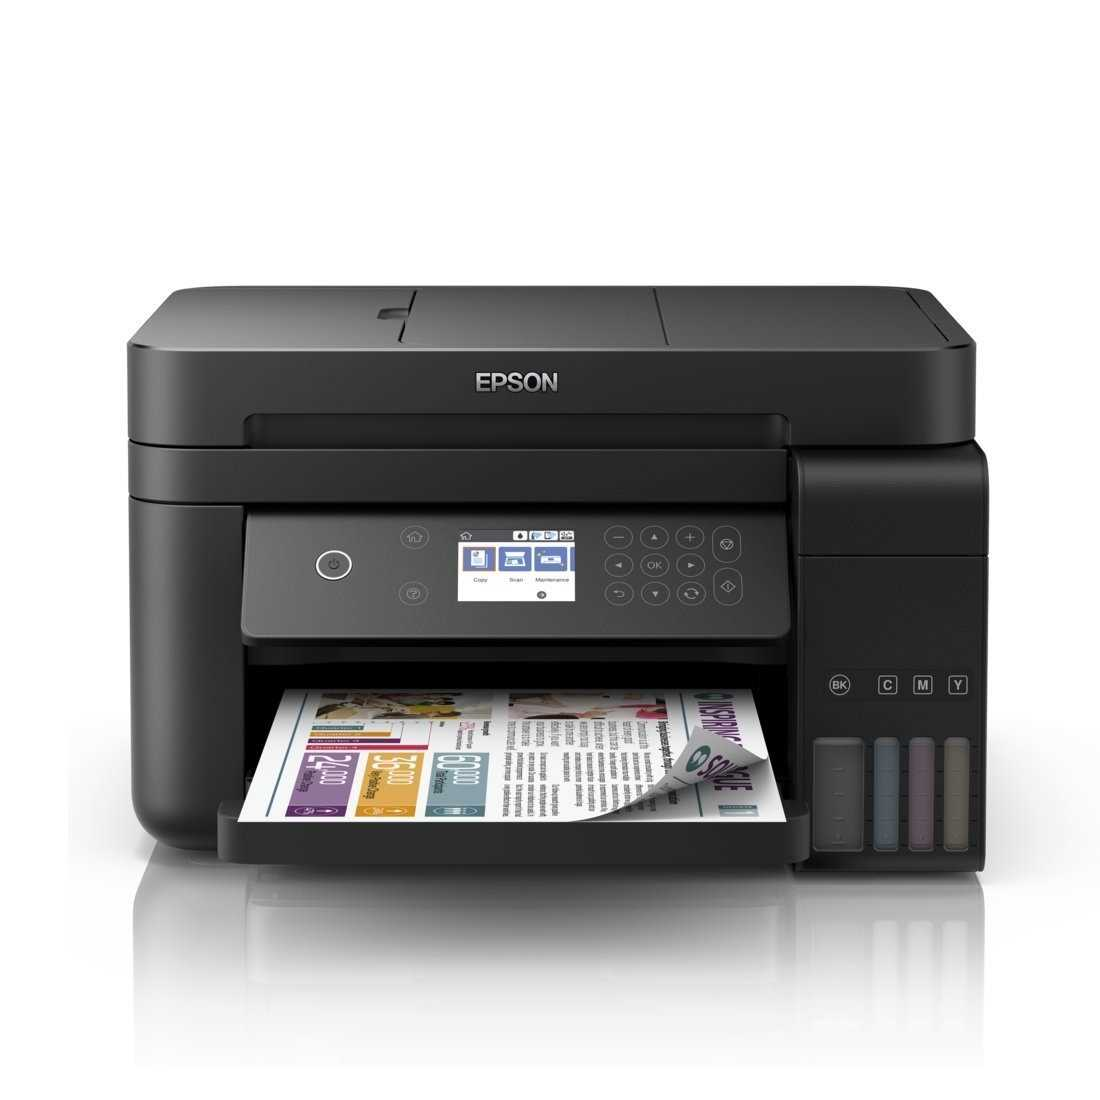 Epson L6170 All In One Printer